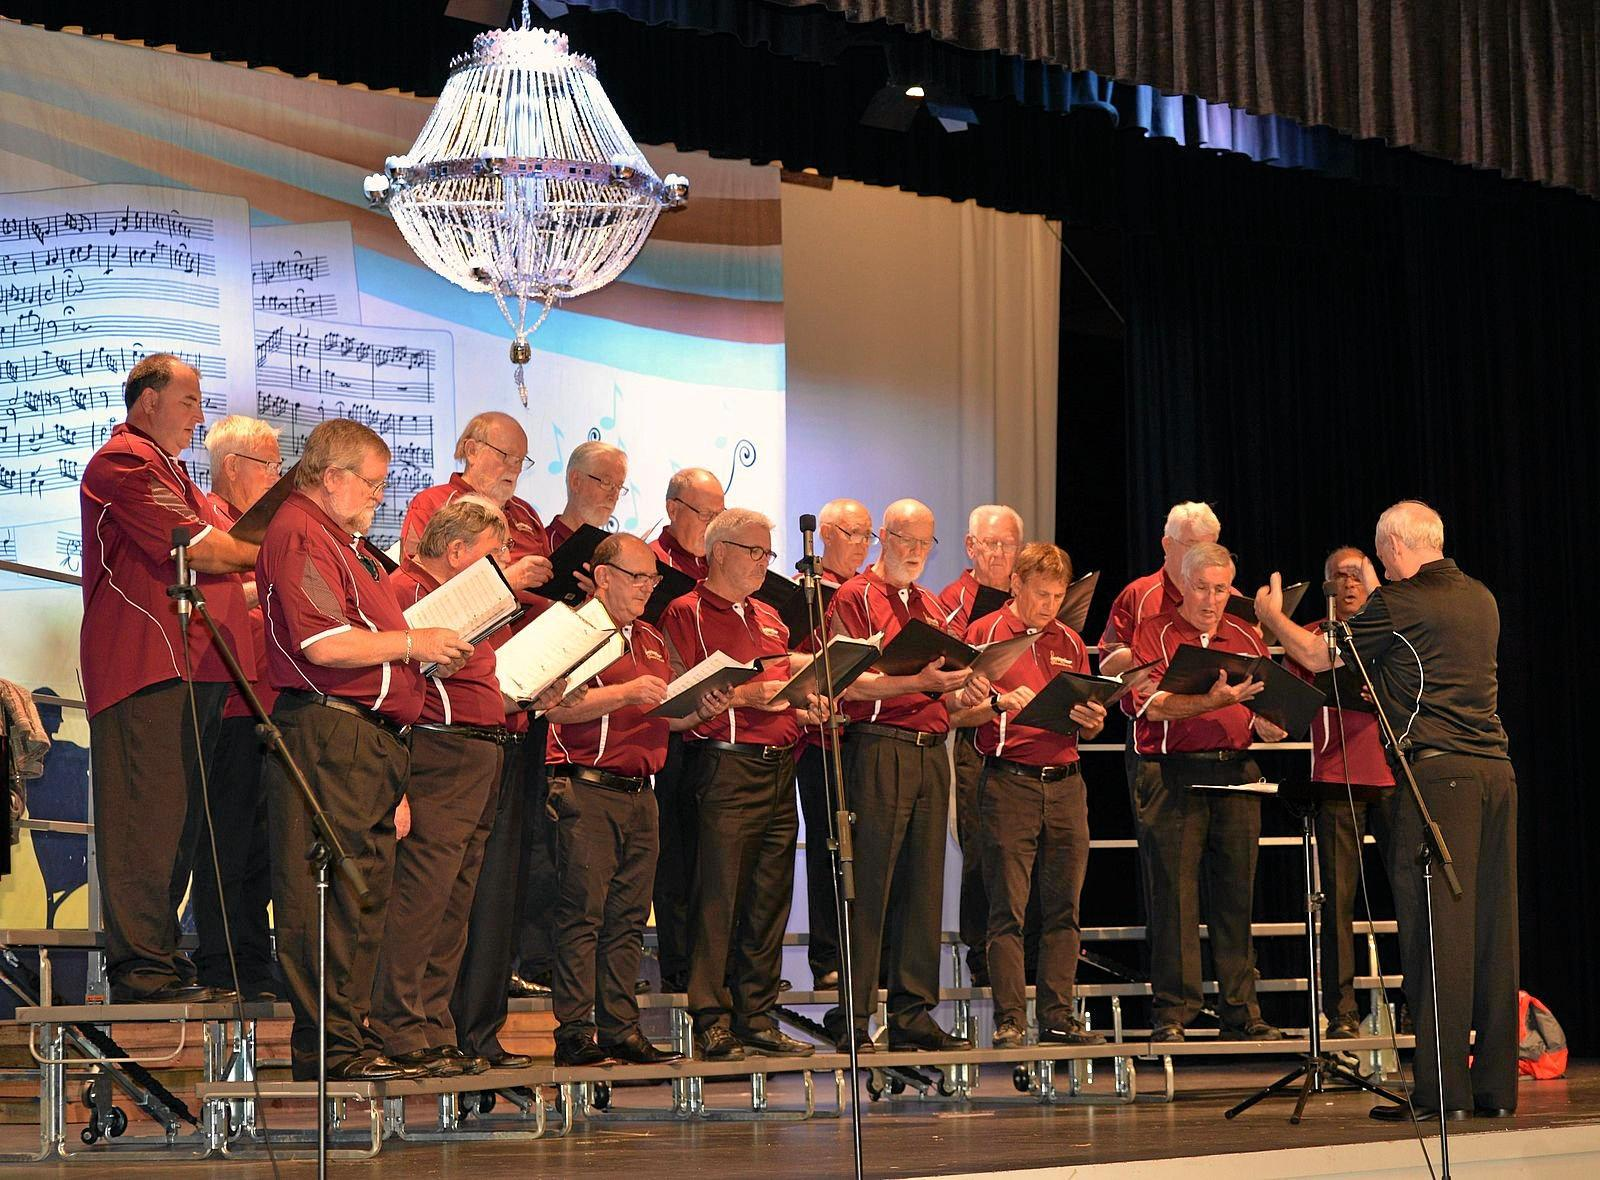 The popular Buderim Male Choir will premiere their current program of popular songs that stir the soul in the Uniting Church, Queen Street, Caloundra at 2pm Sunday, October 27.